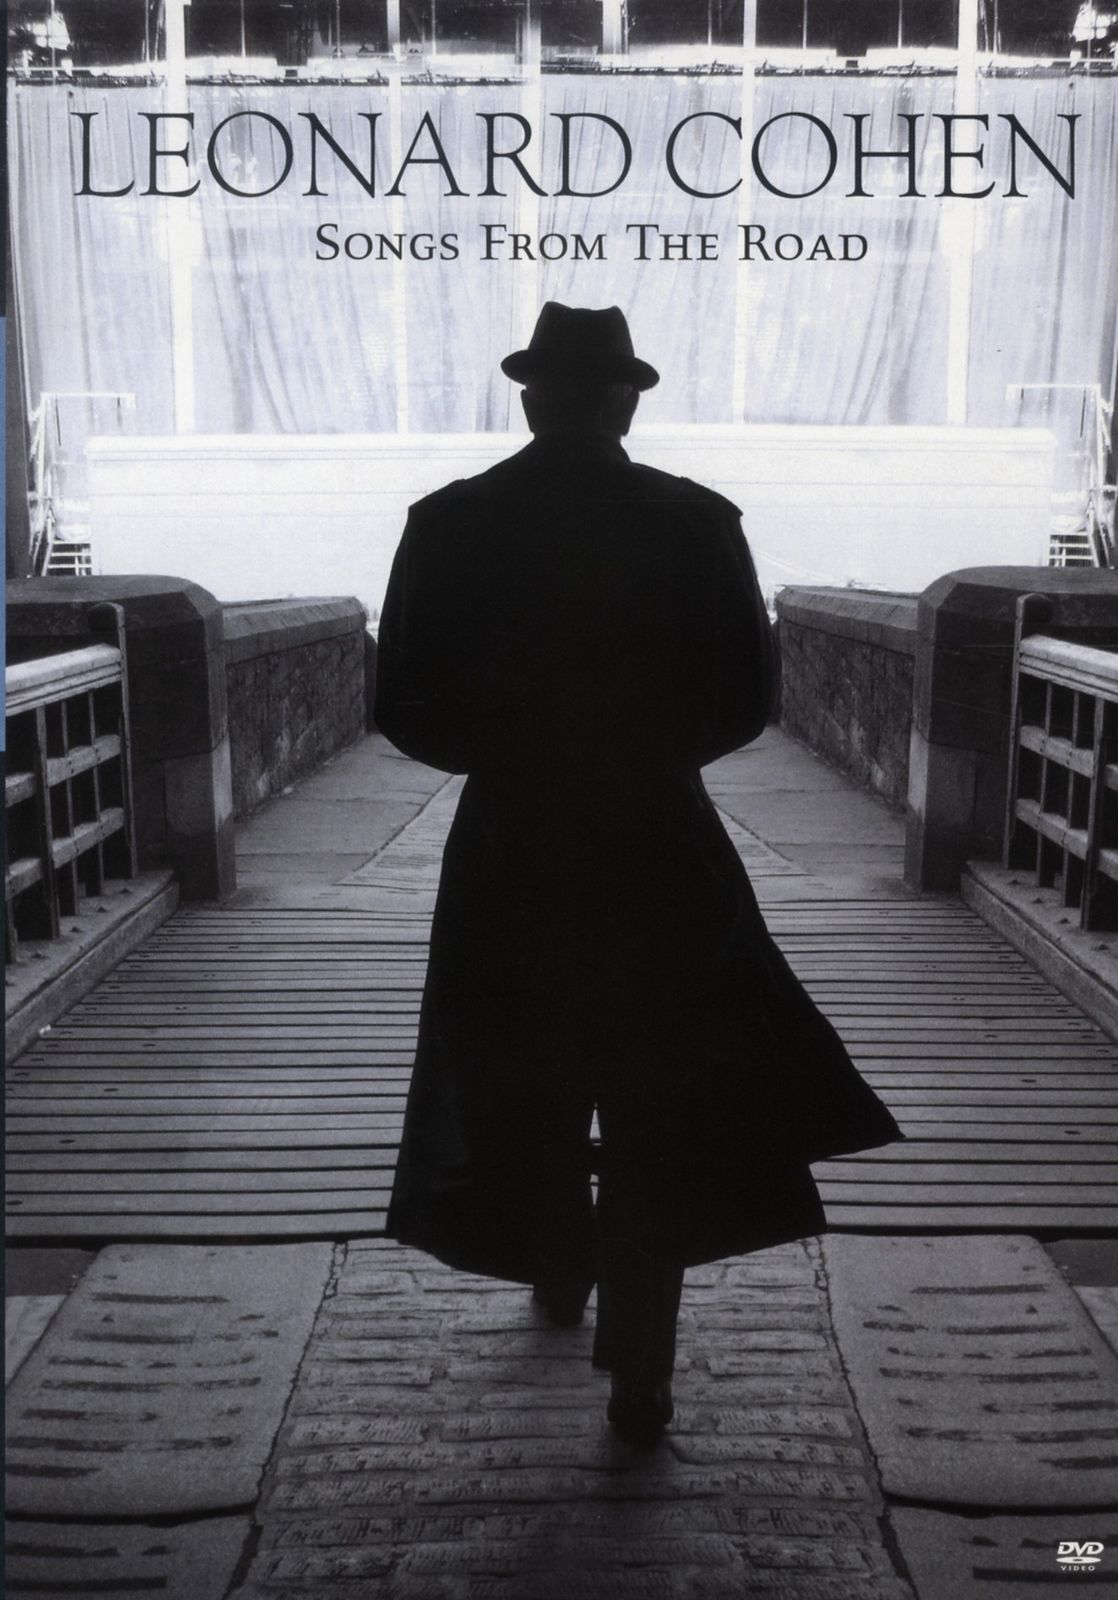 Songs from the Road - Leonard Cohen - Film - SONY MUSIC - 0886977591792 - 15/9-2010